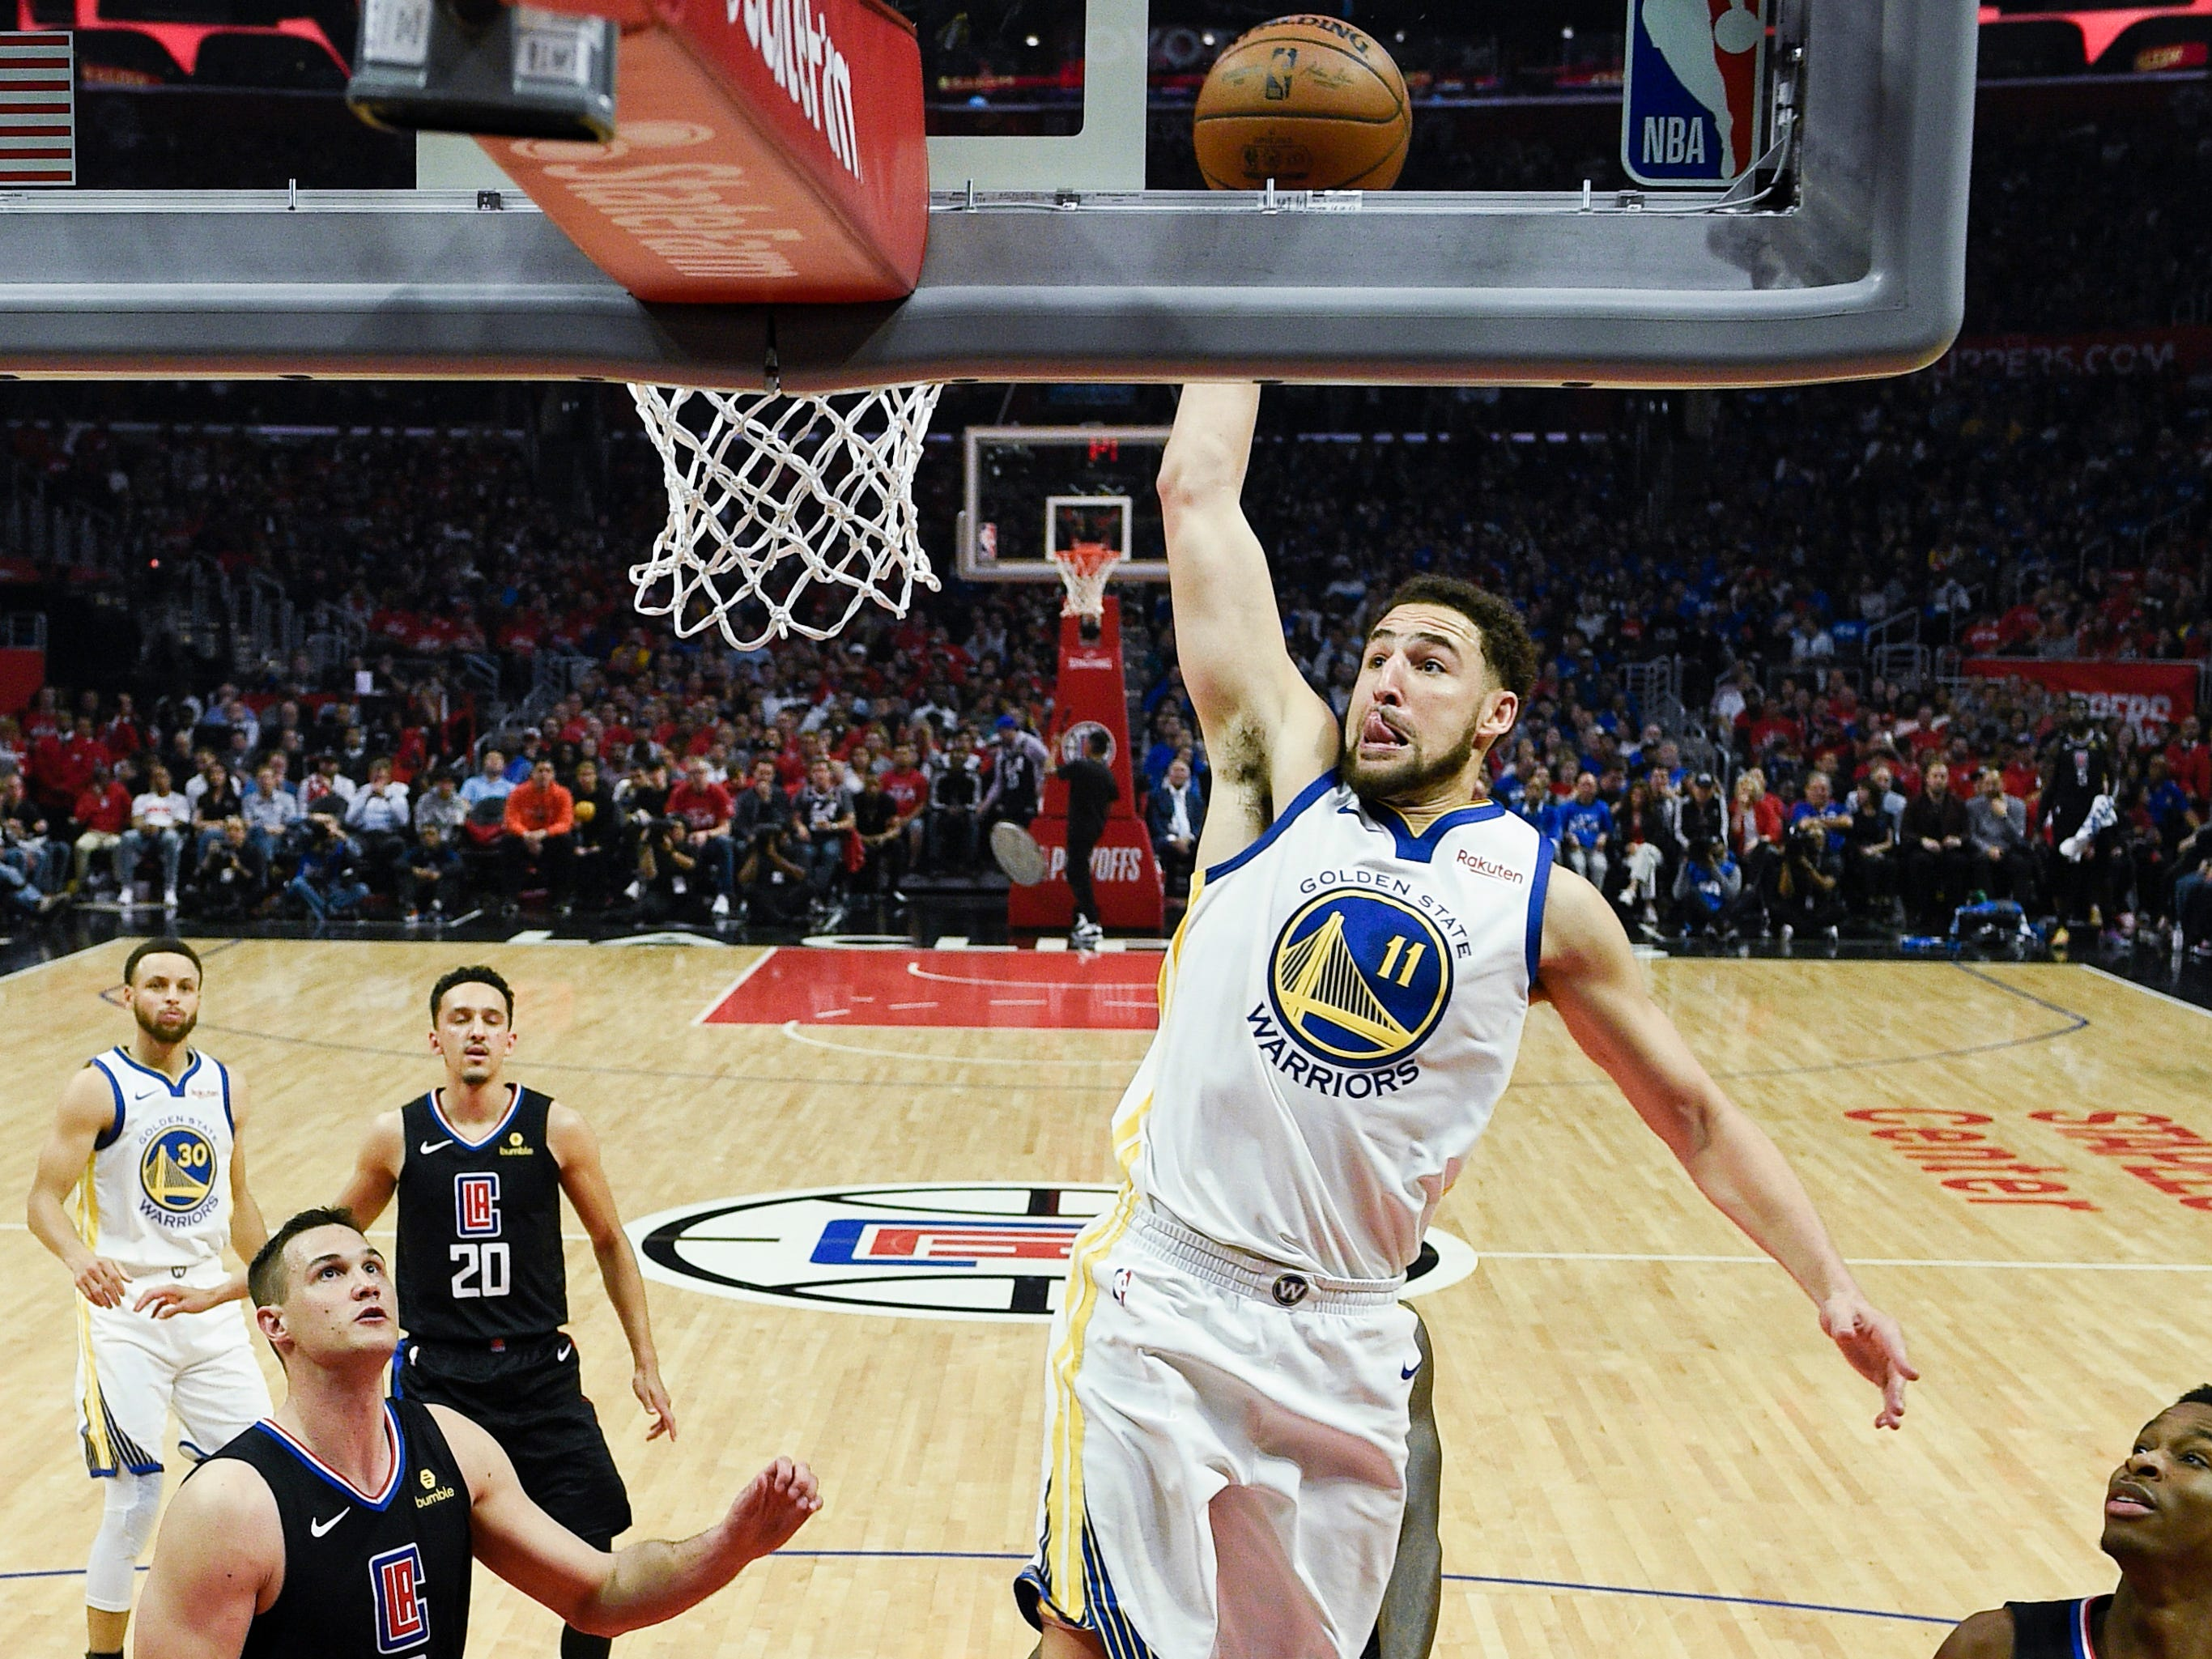 April 18: Warriors guard Klay Thompson soars to the bucket for a one-handed slam during Game 4 against the Clippers.